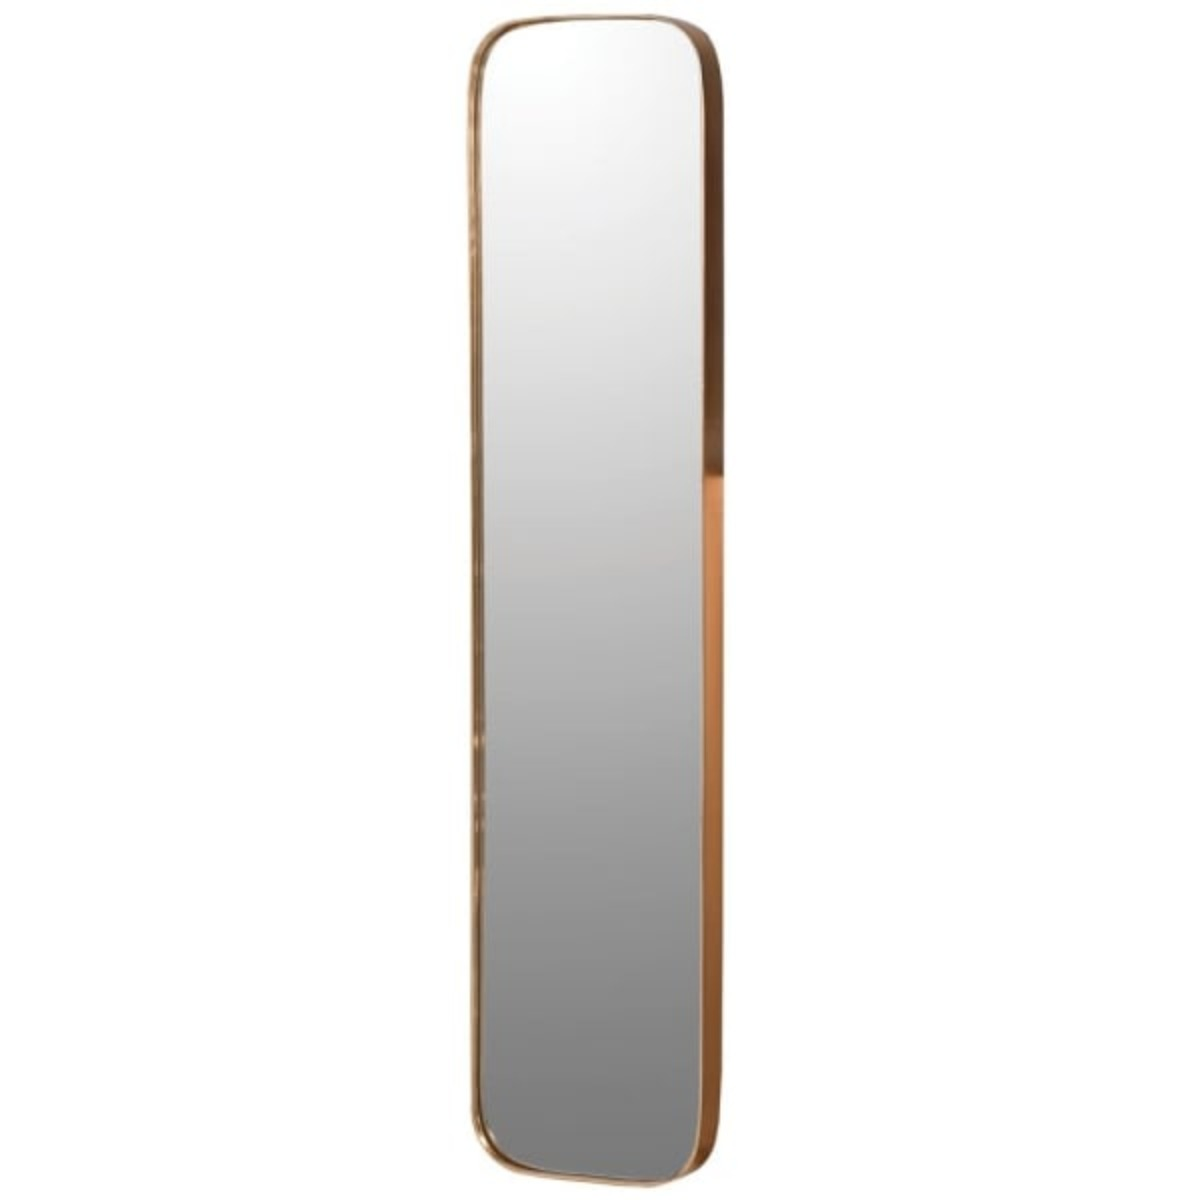 1842 Long curved edge mirror